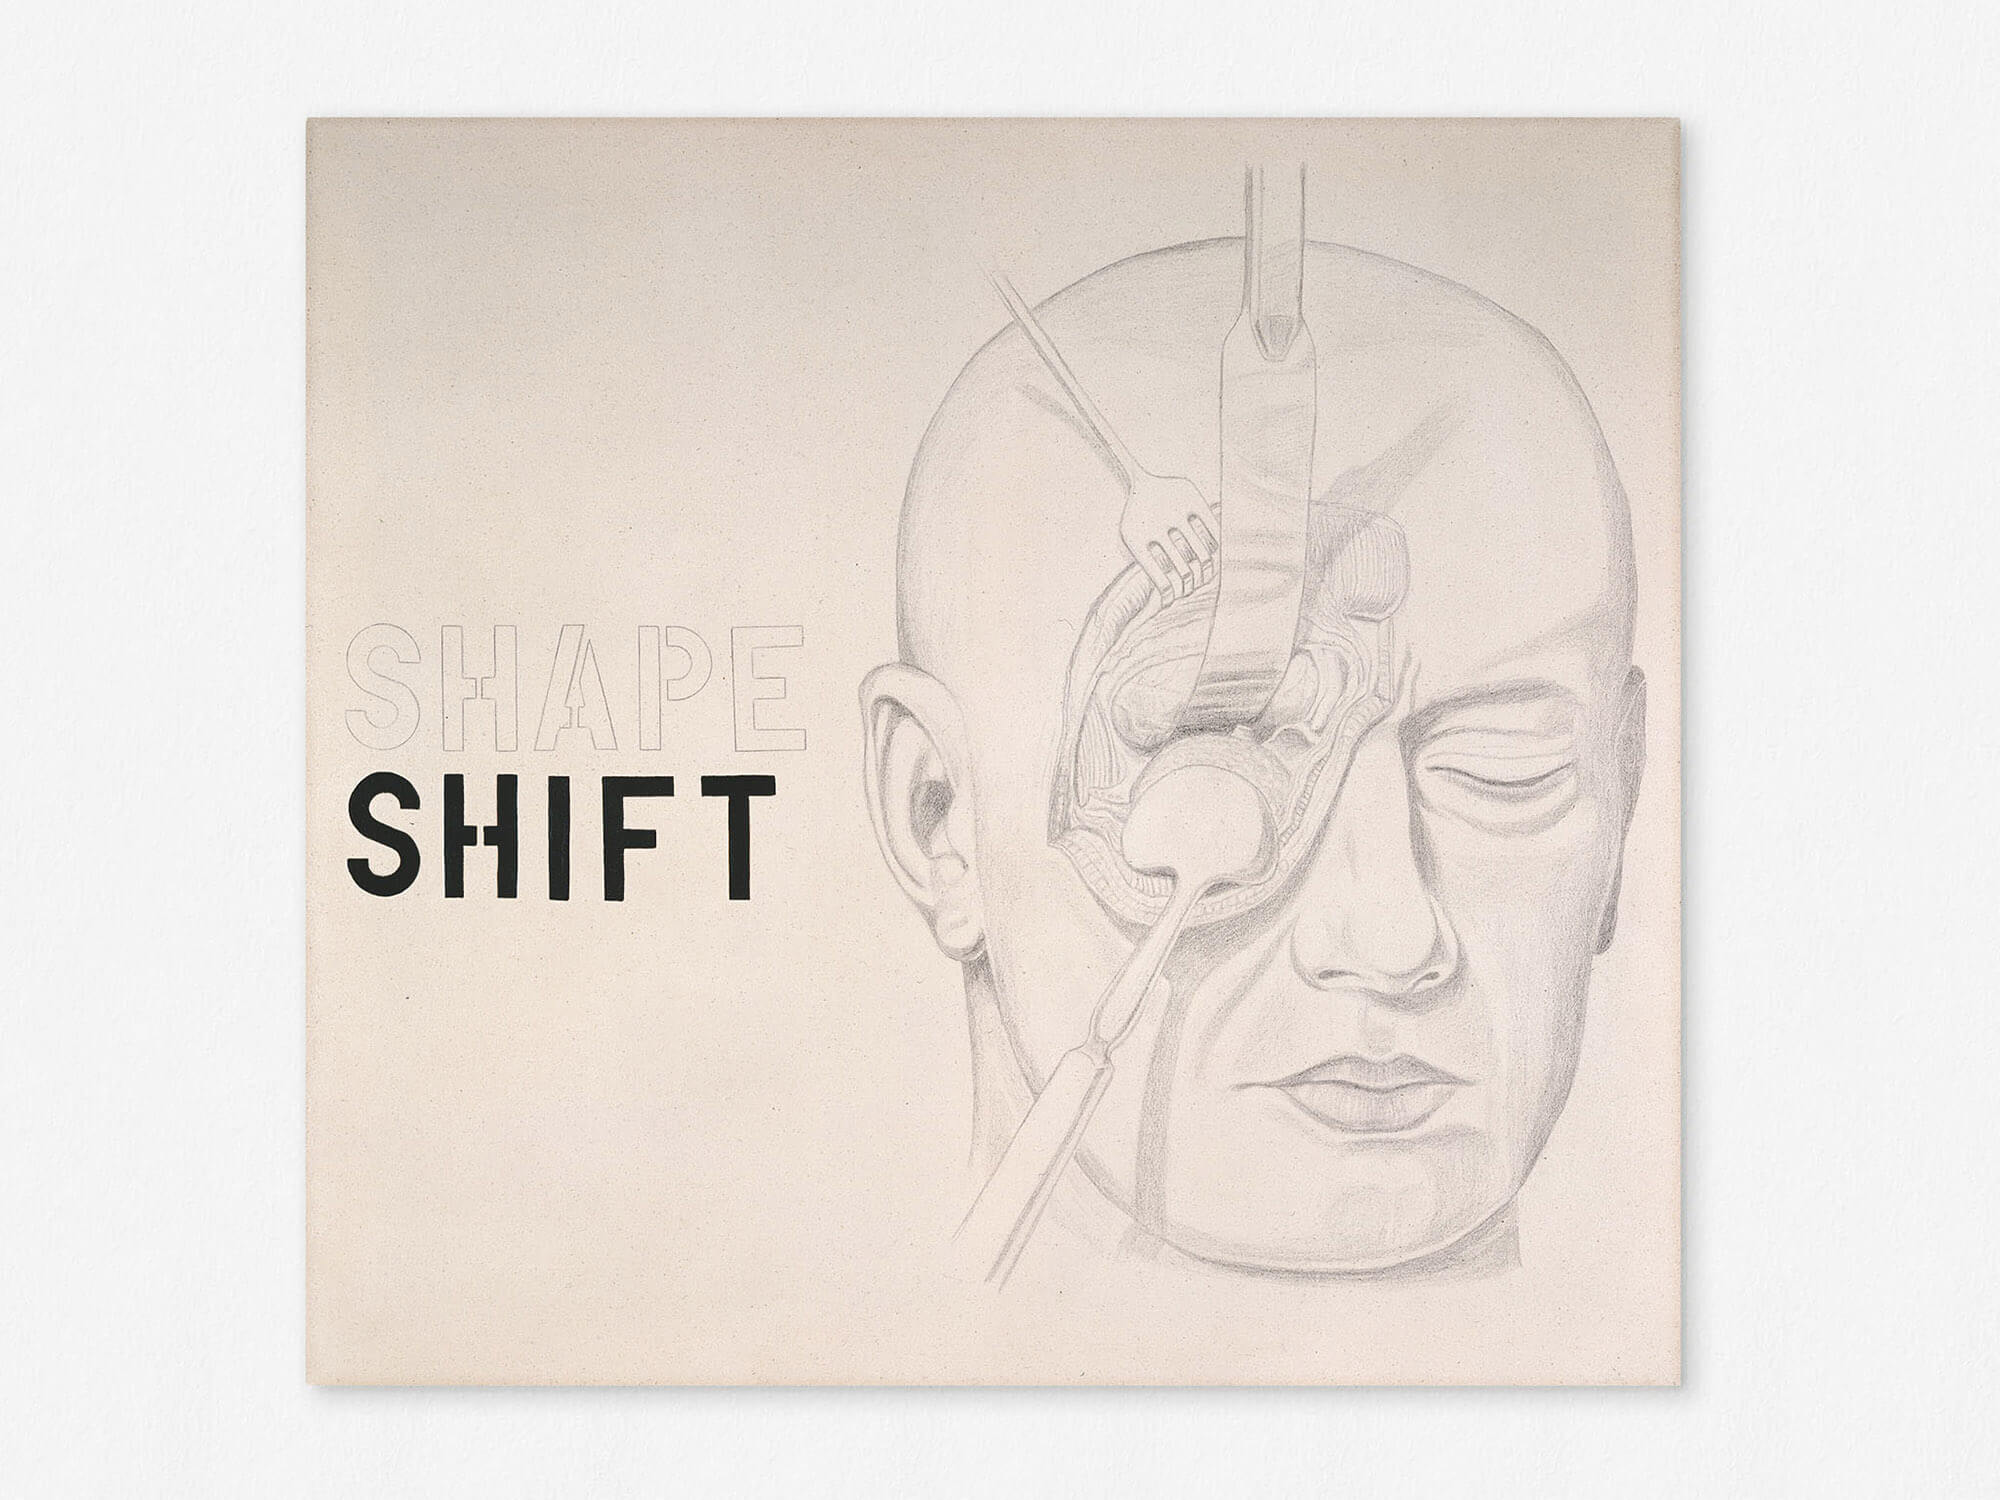 Marcus Kleinfeld, SHAPE / SHIFT, 2009 Oil and pencil on canvas 100 x 110 cm